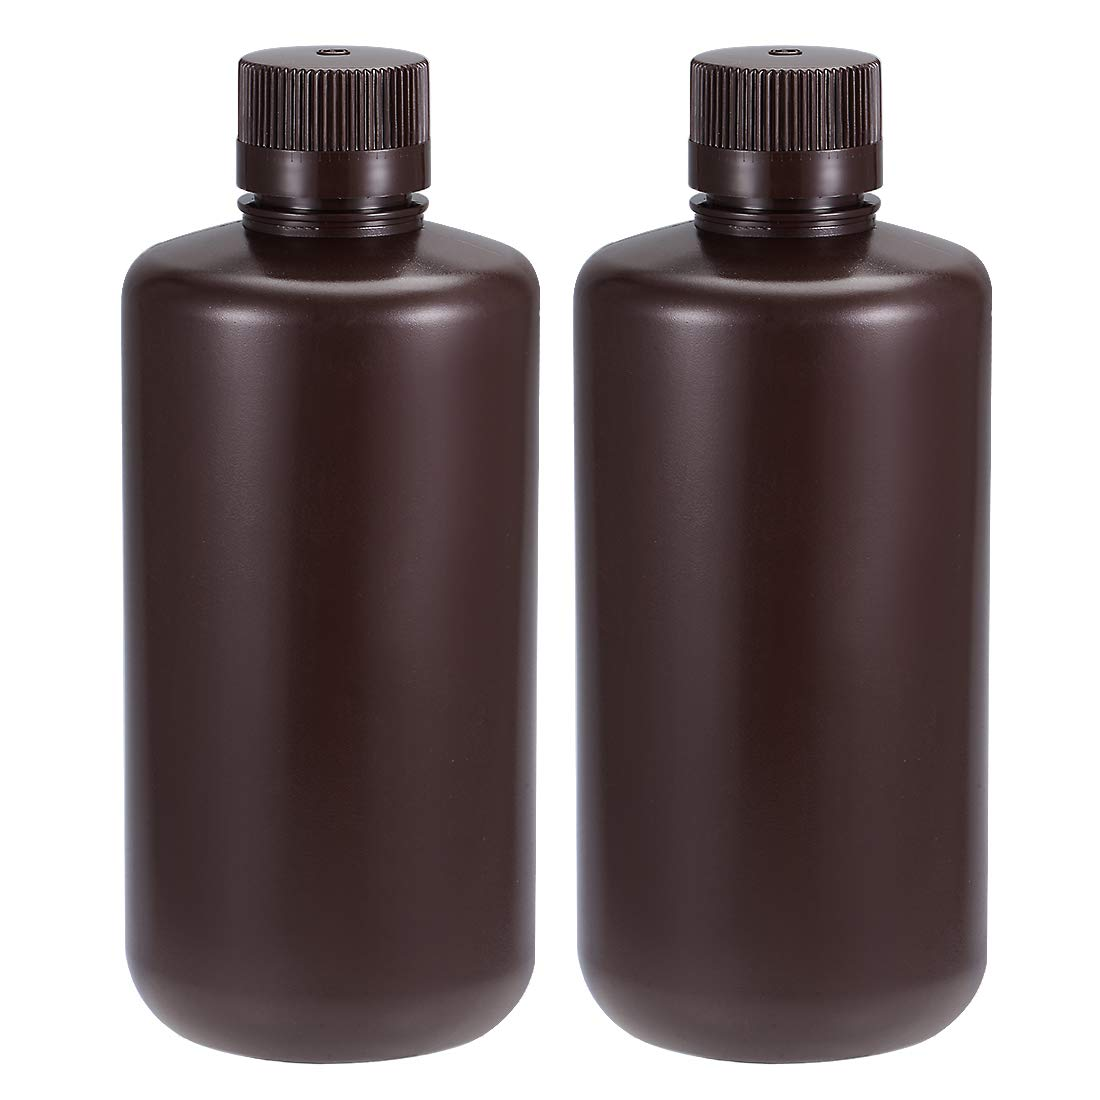 uxcell Plastic Lab Chemical Reagent Bottle 1000ml/33.8oz Small Mouth Sample Sealing Liquid Storage Container Brown 2pcs